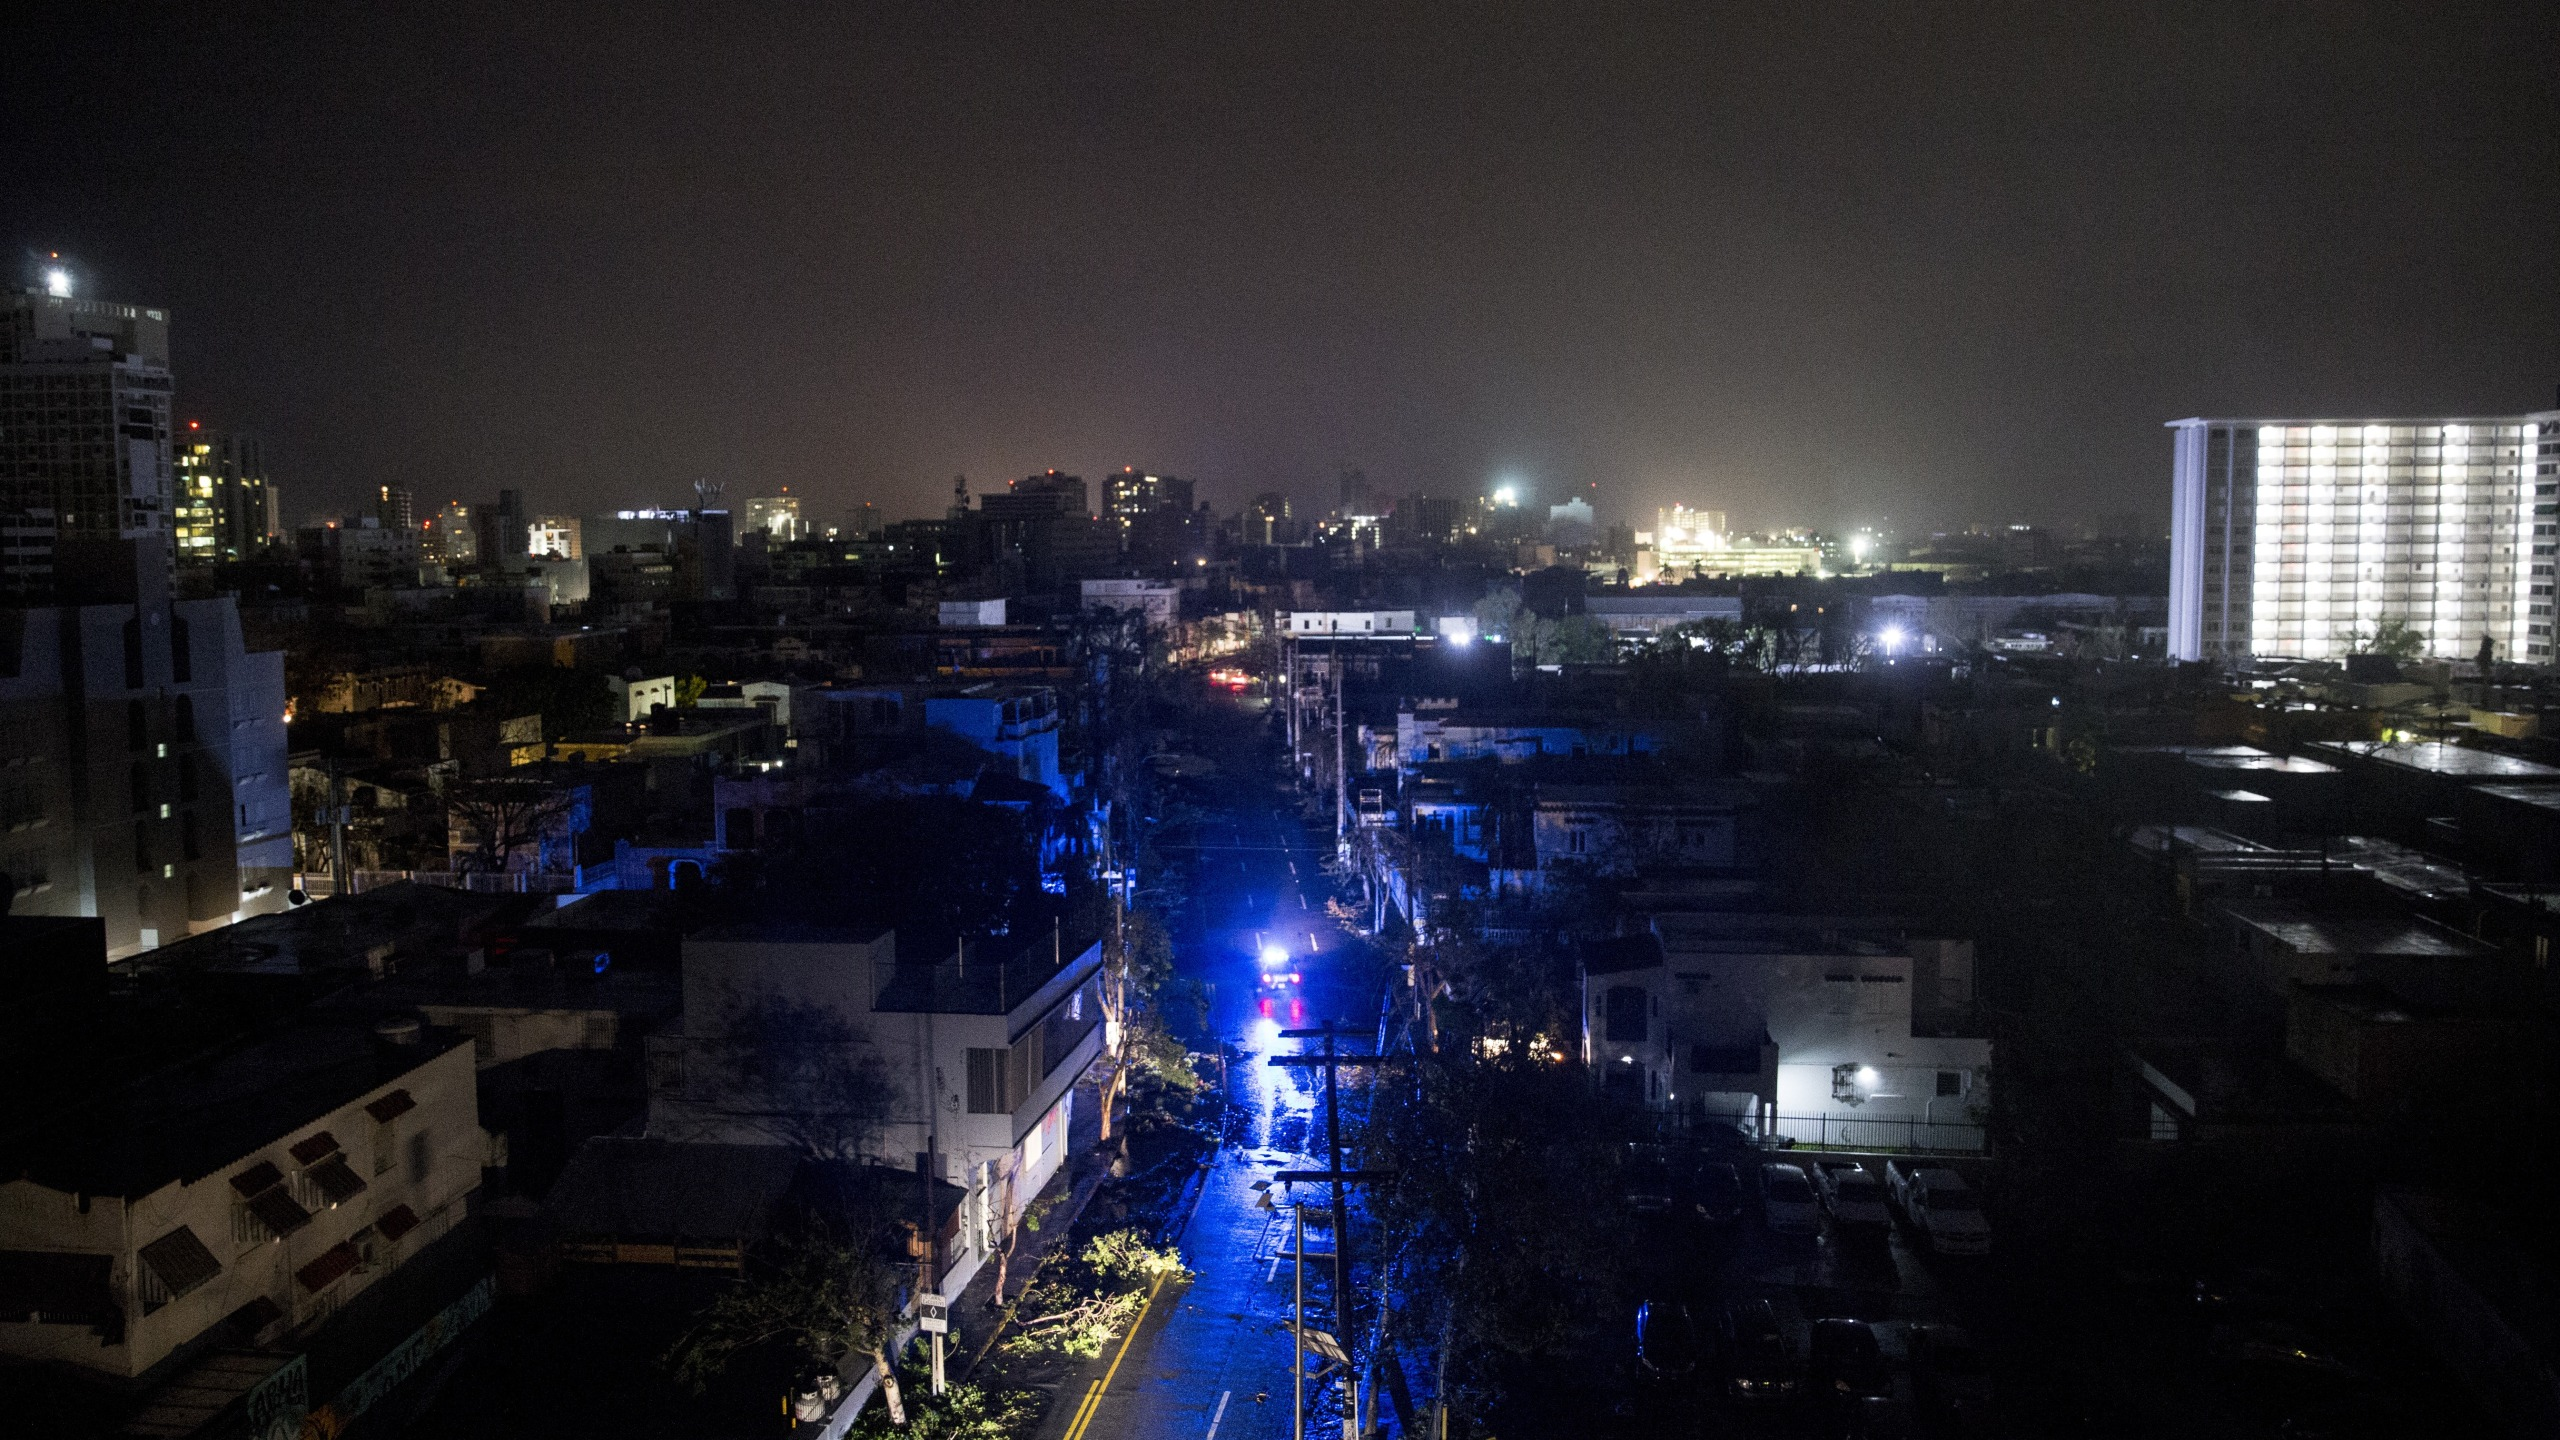 San Juan is seen during a total blackout after Hurricane Maria made landfall as a Category 4 storm on Sept. 20, 2017. (Credit: Alex Wroblewski/Getty Images)